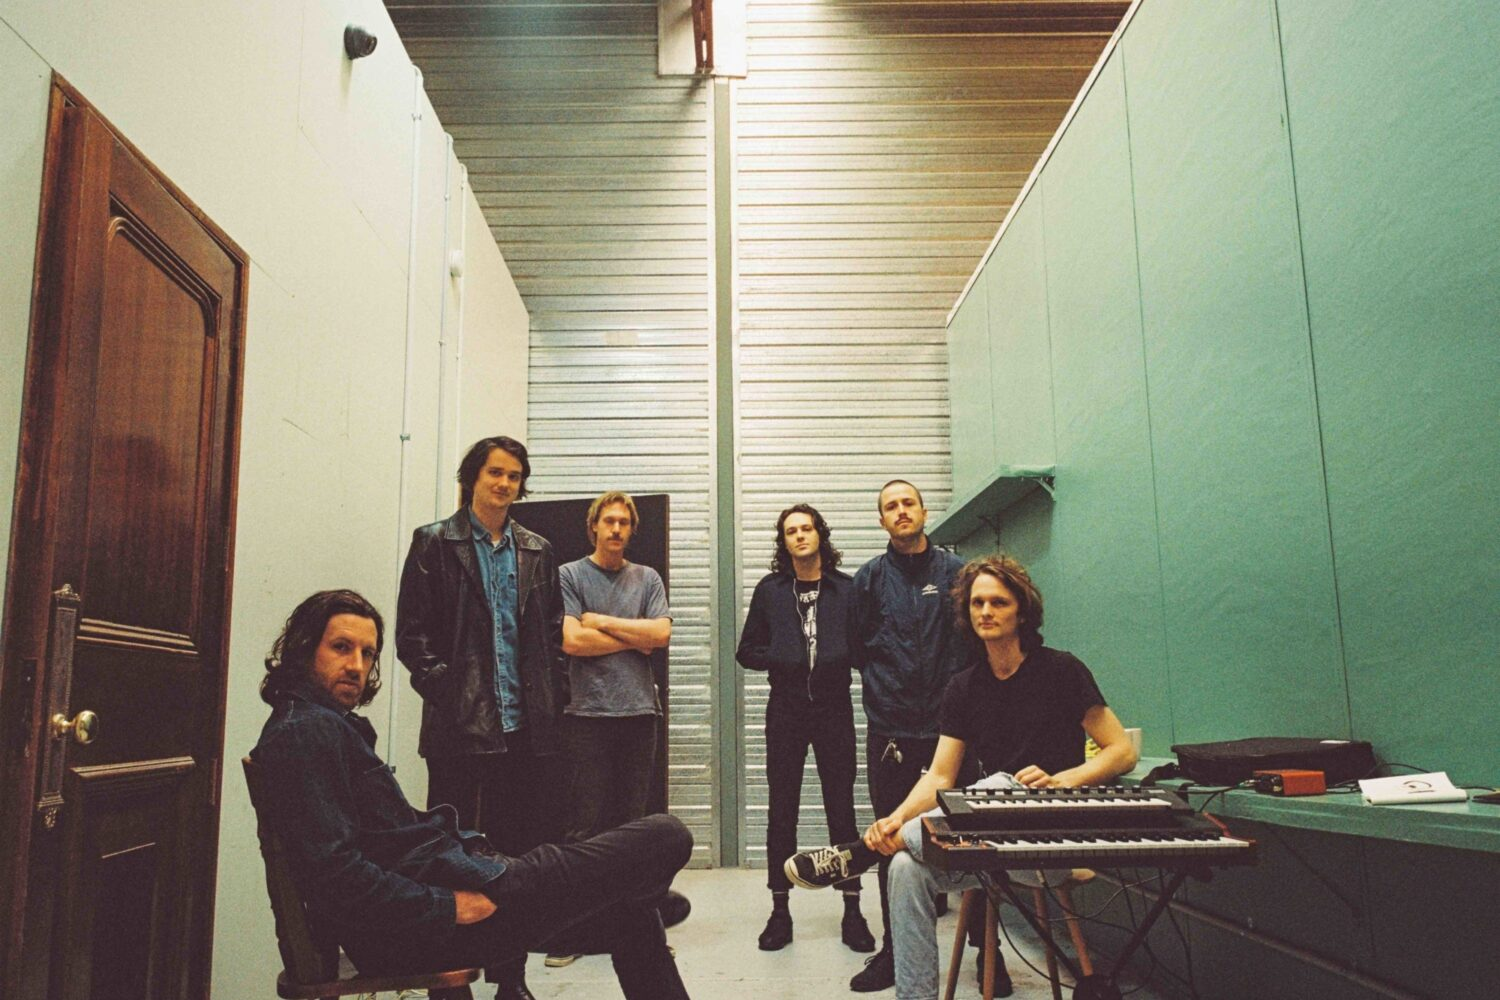 King Gizzard & The Lizard Wizard offer up new track 'O.N.E.'